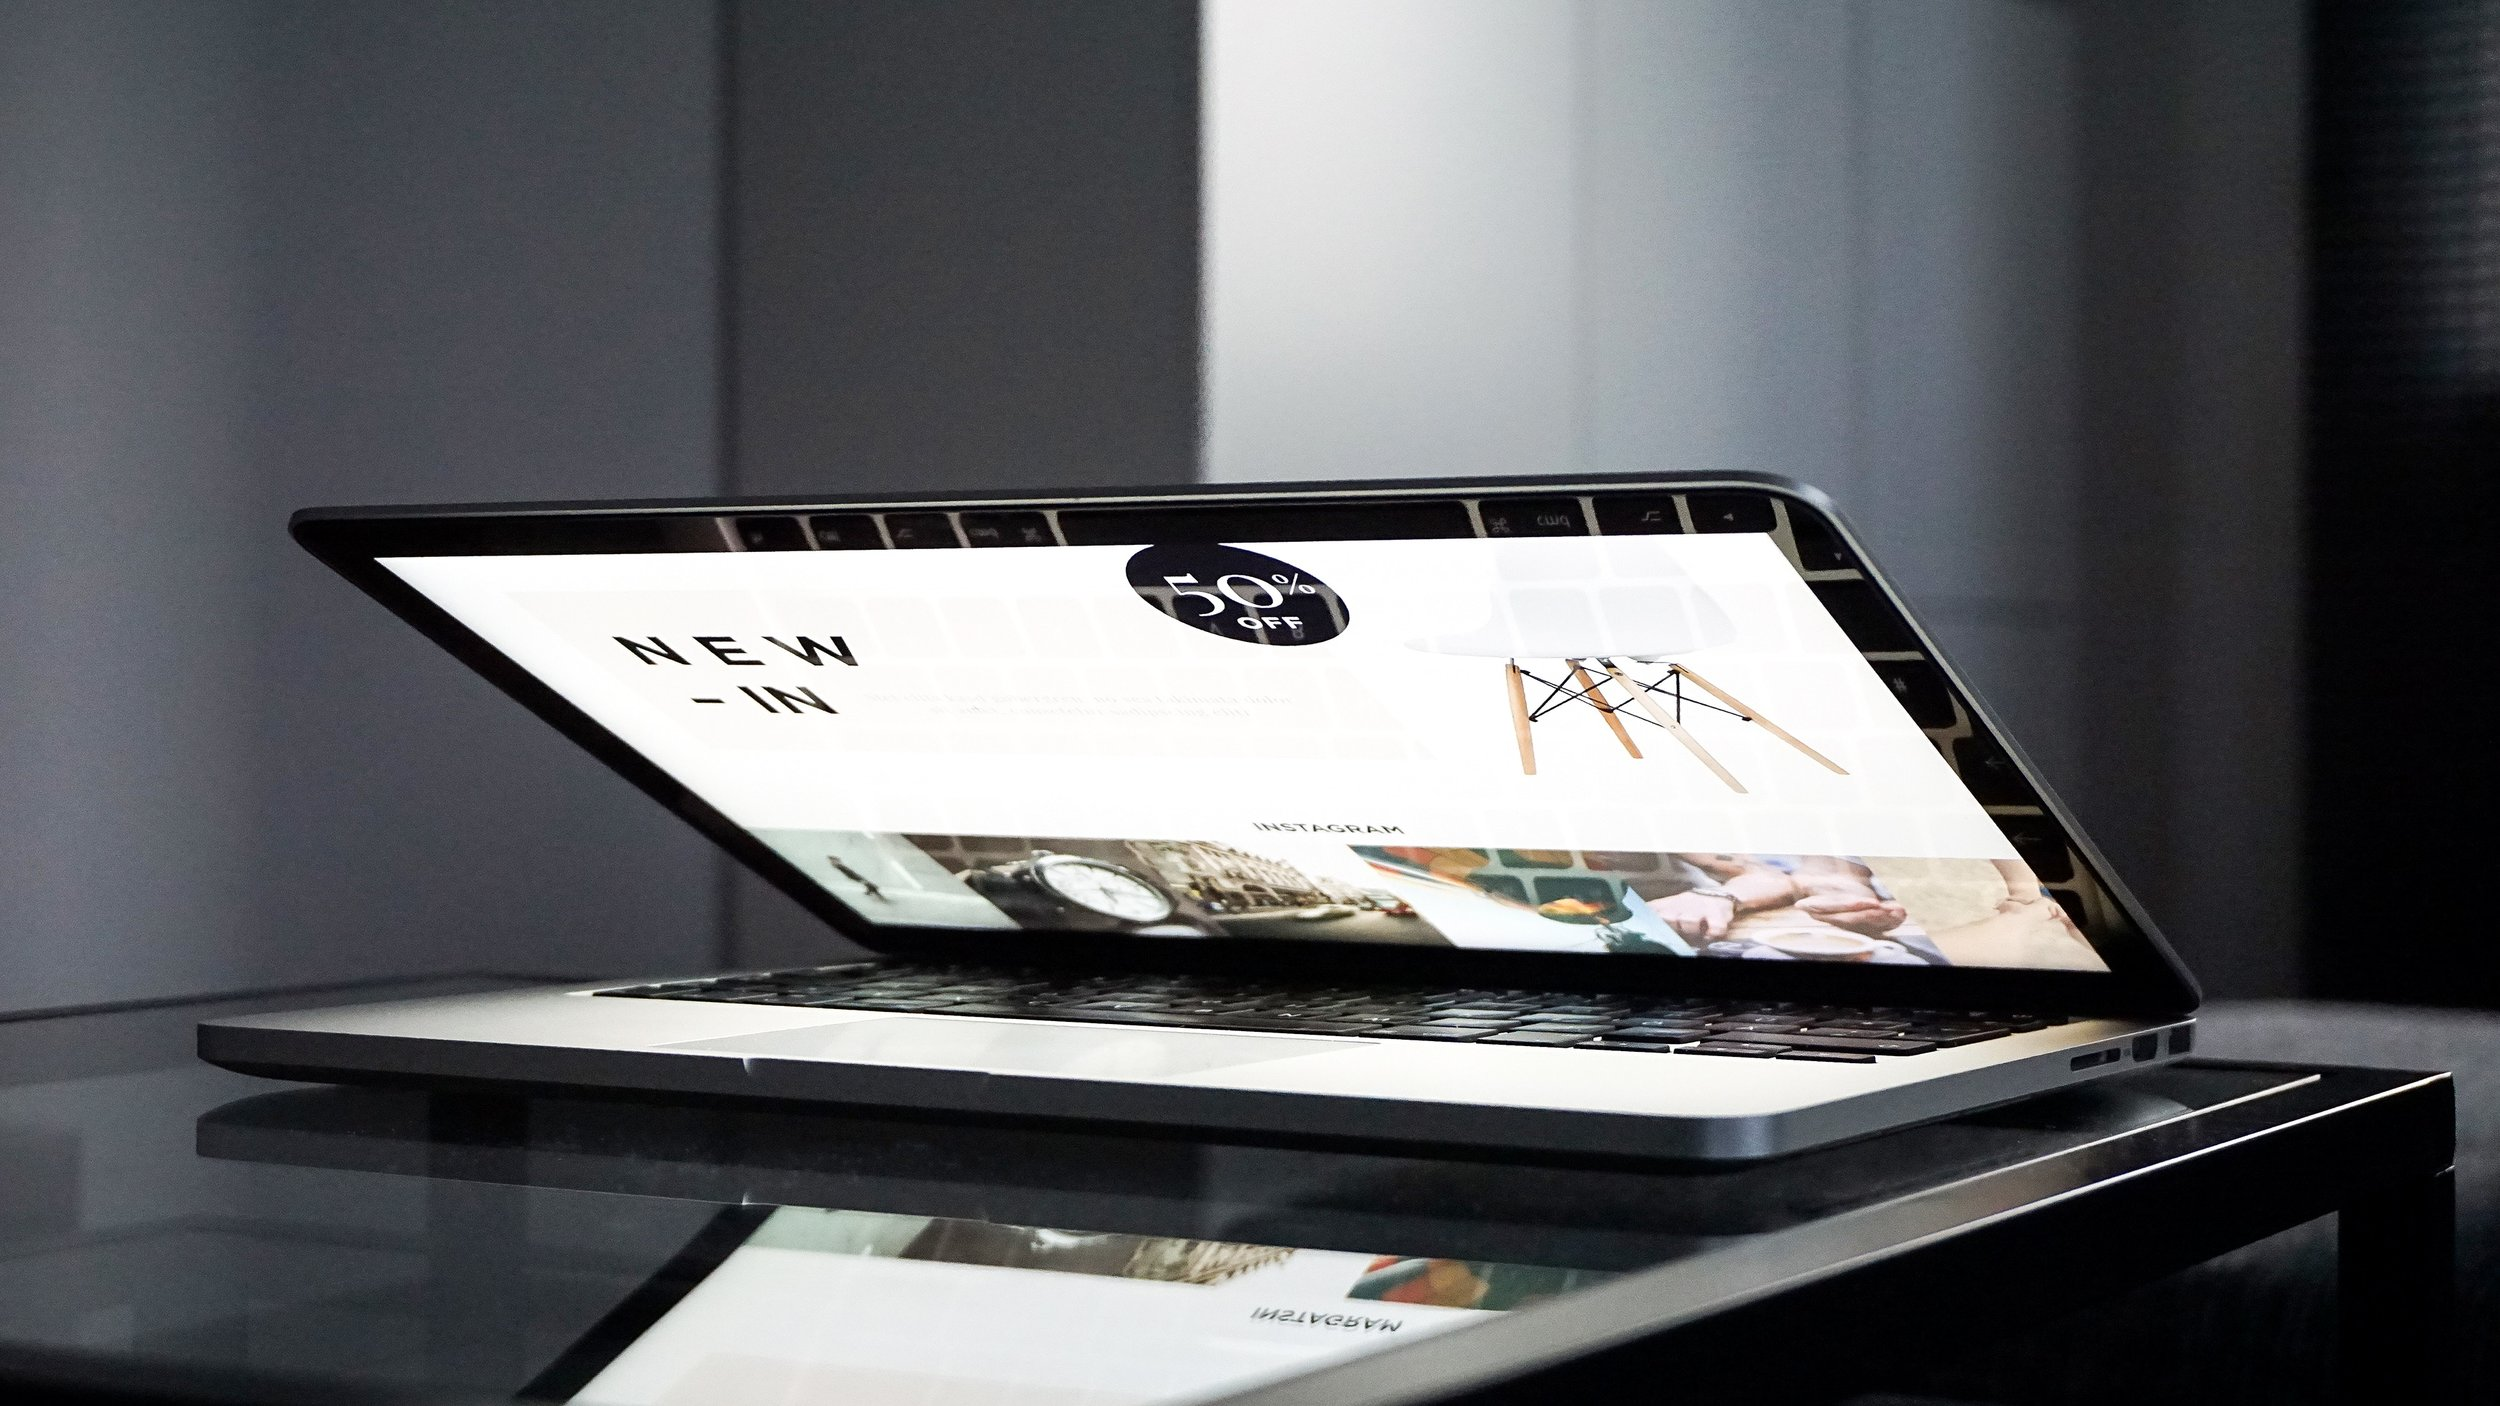 WEBSITE DESIGN - A great looking, modern website is essential to any new business in today's marketplace.